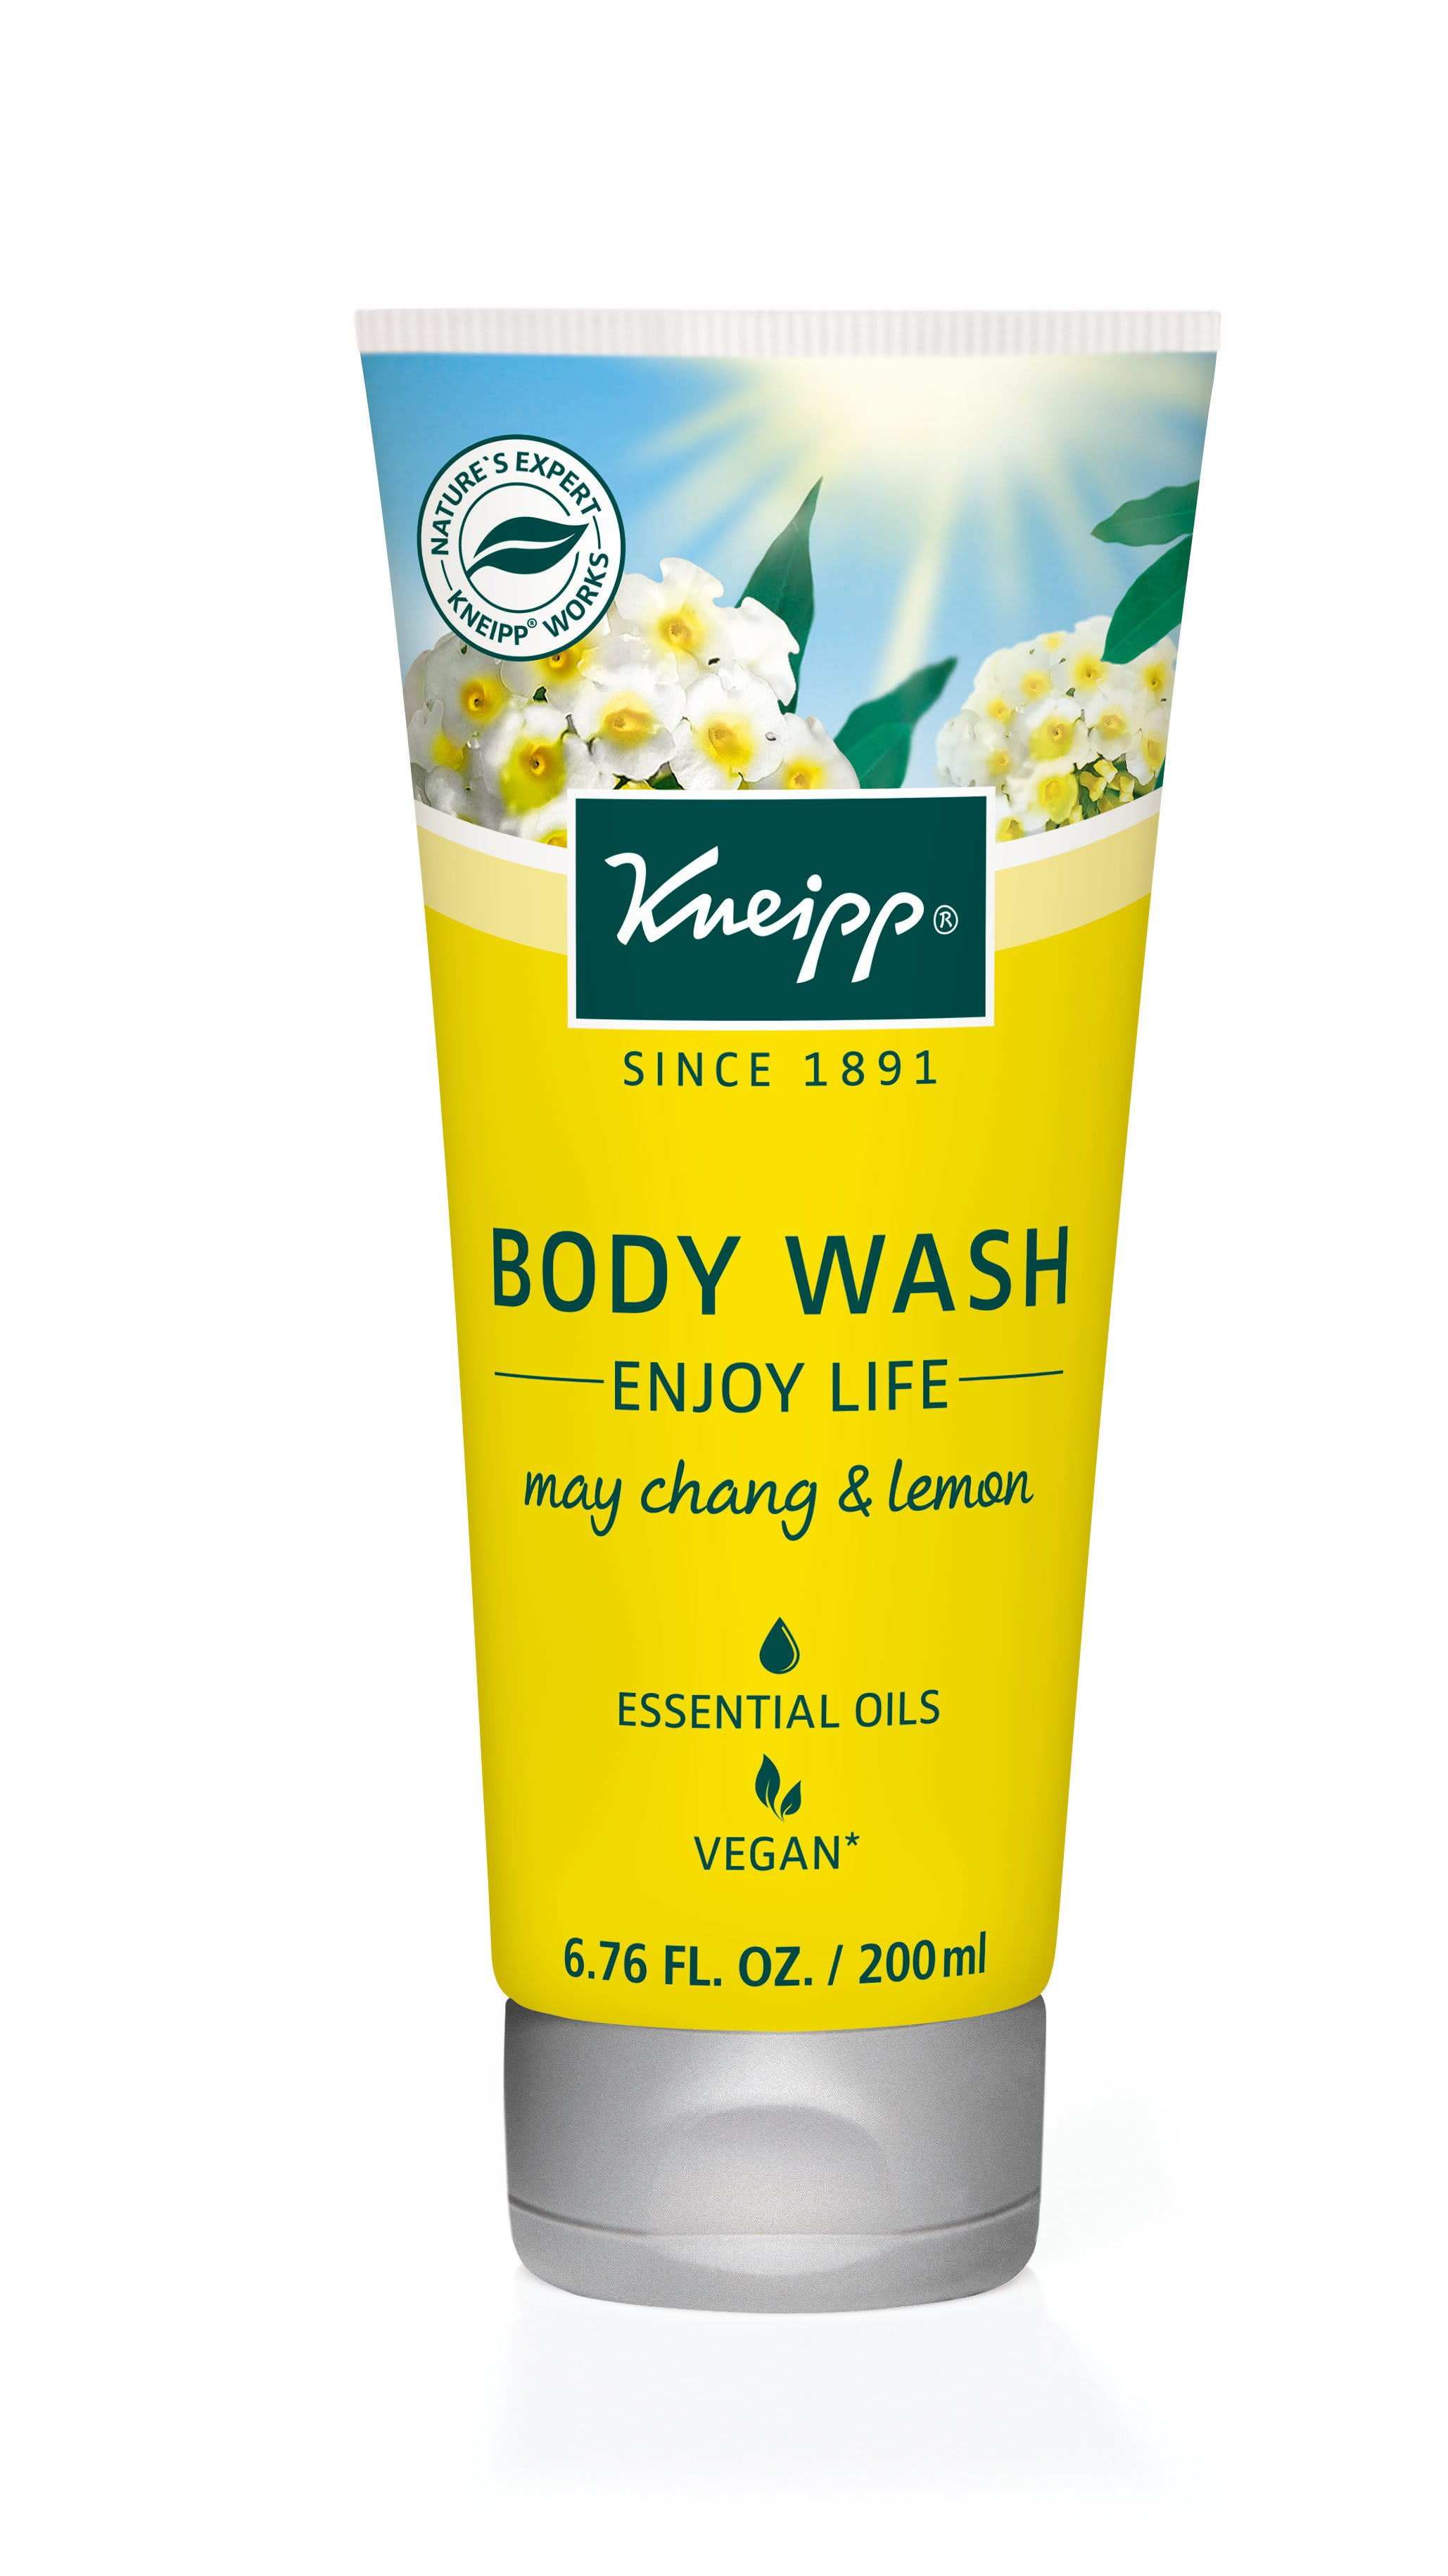 Kneipp Enjoy Life Body Wash